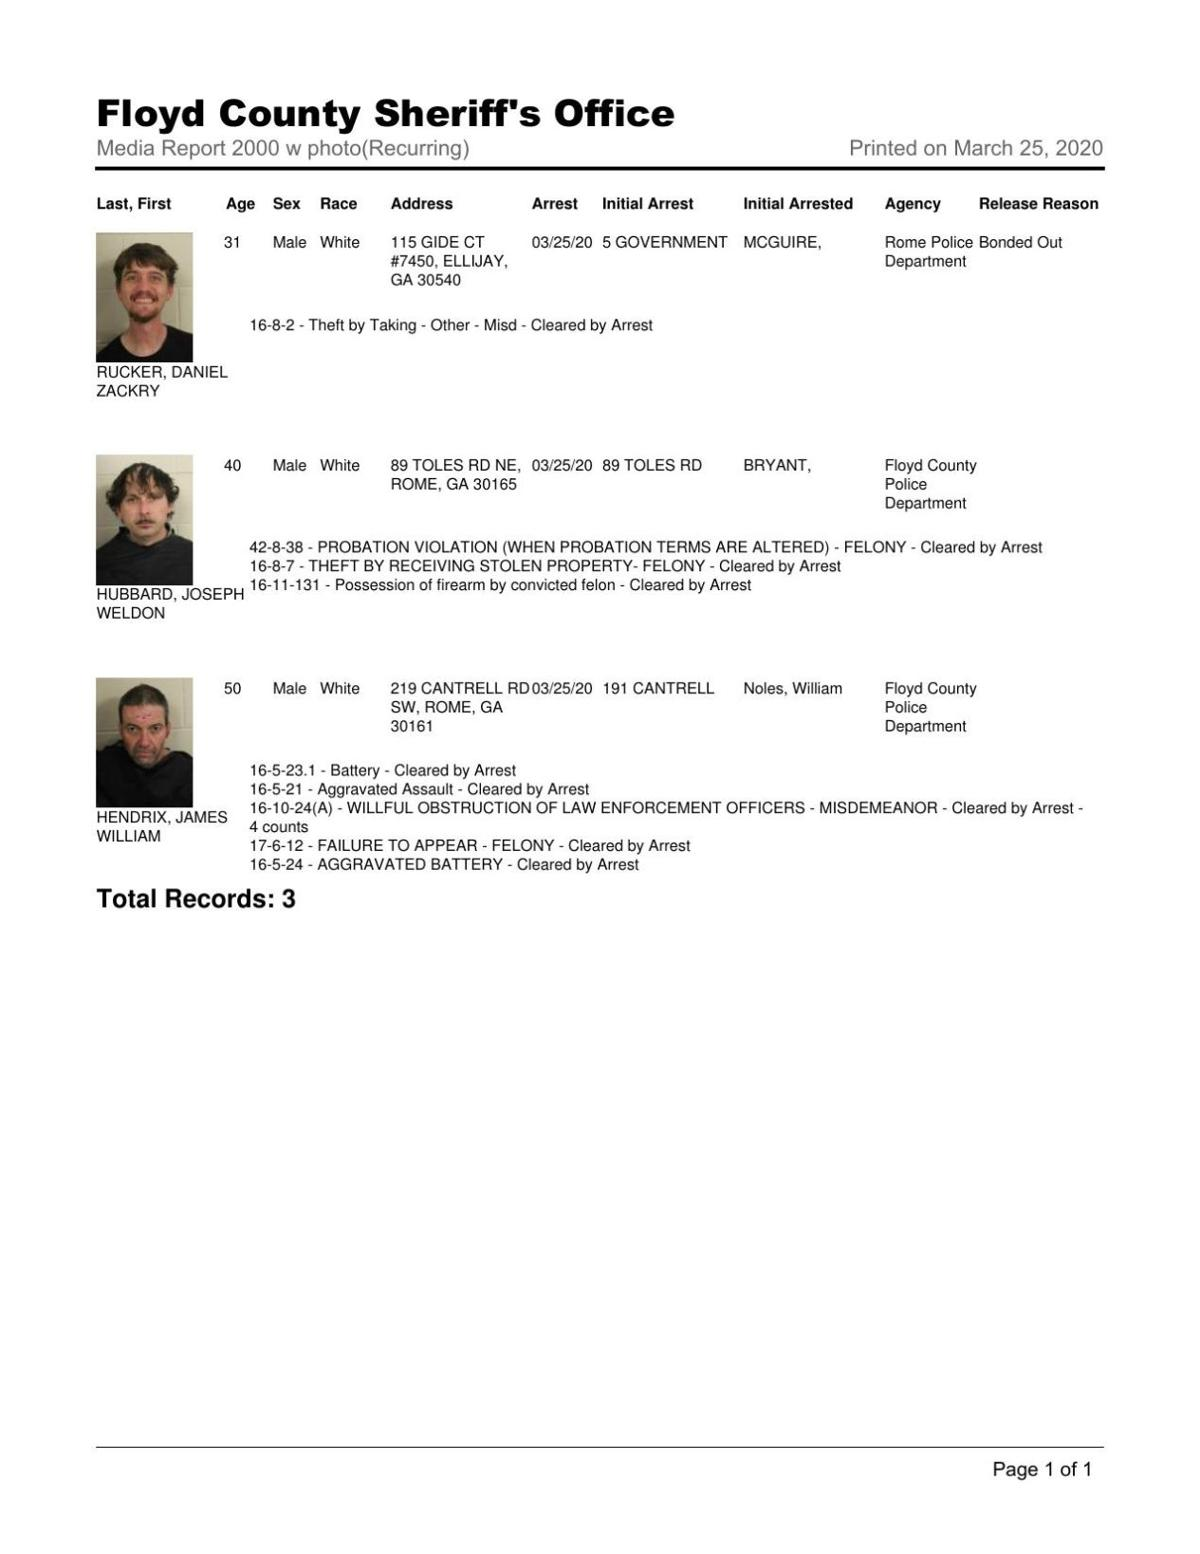 Floyd County Jail report for 8 p.m. Wednesday March 25